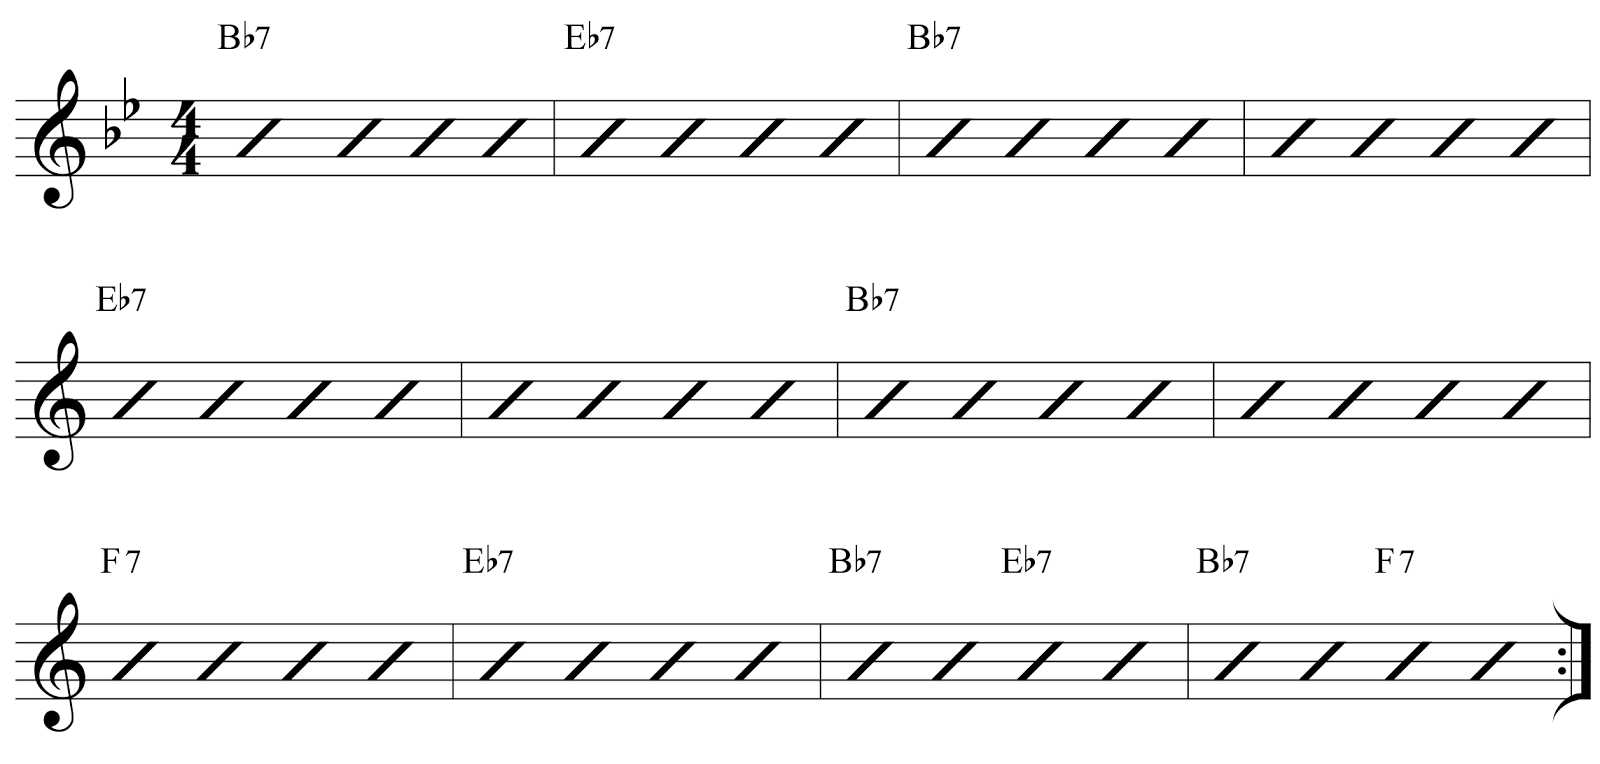 Creative guitar studio this is by far the most commonly applied group of blues chord changes this progression is used in thousands and thousands of songs and is an absolute must hexwebz Gallery